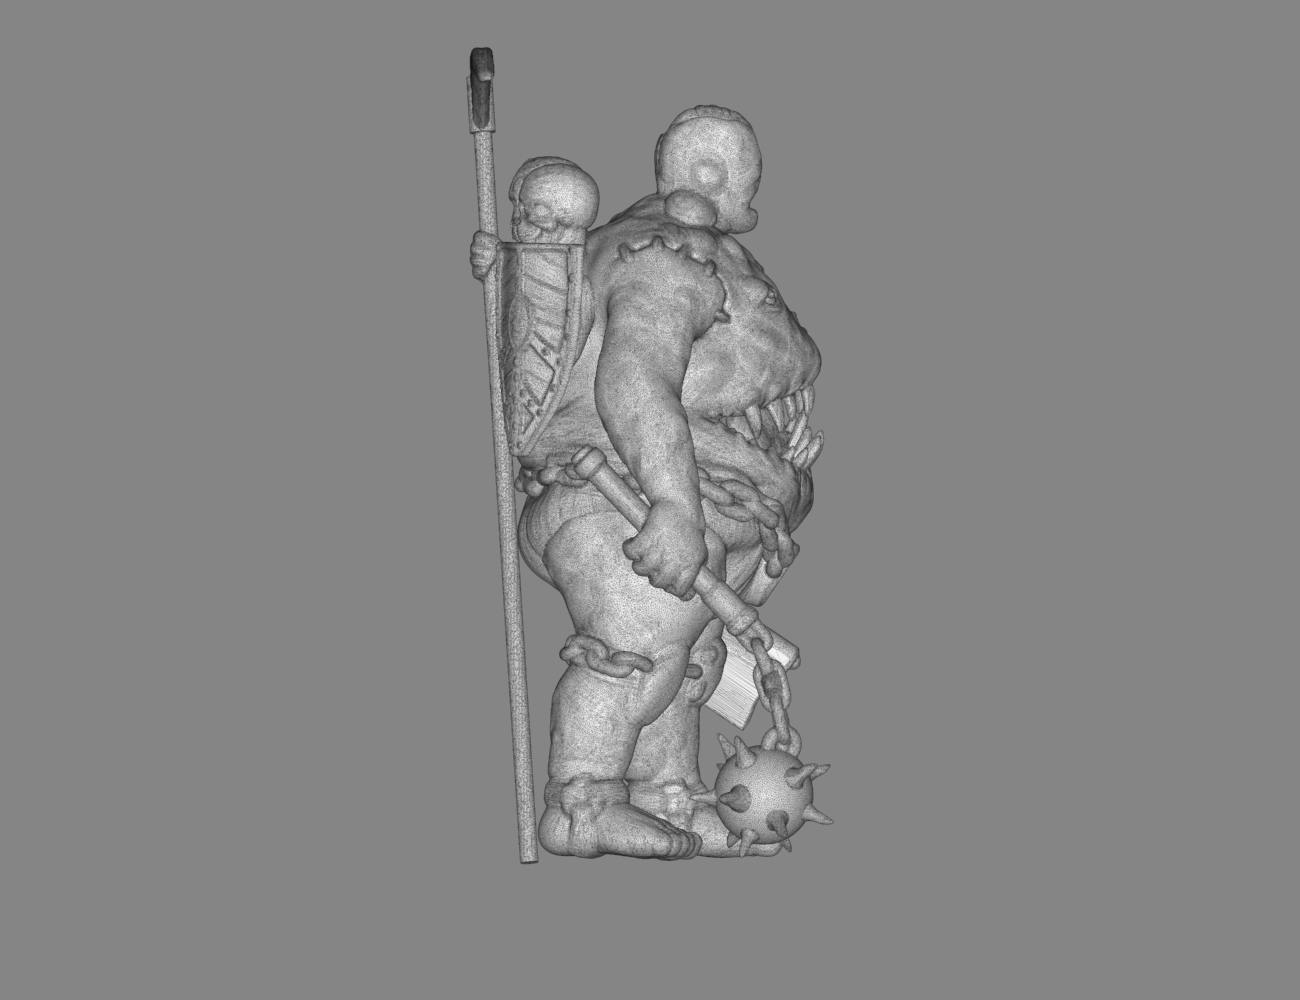 mesh_scene.4.png Download STL file Pirfes figure - 3D print model • Design to 3D print, 3D-mon